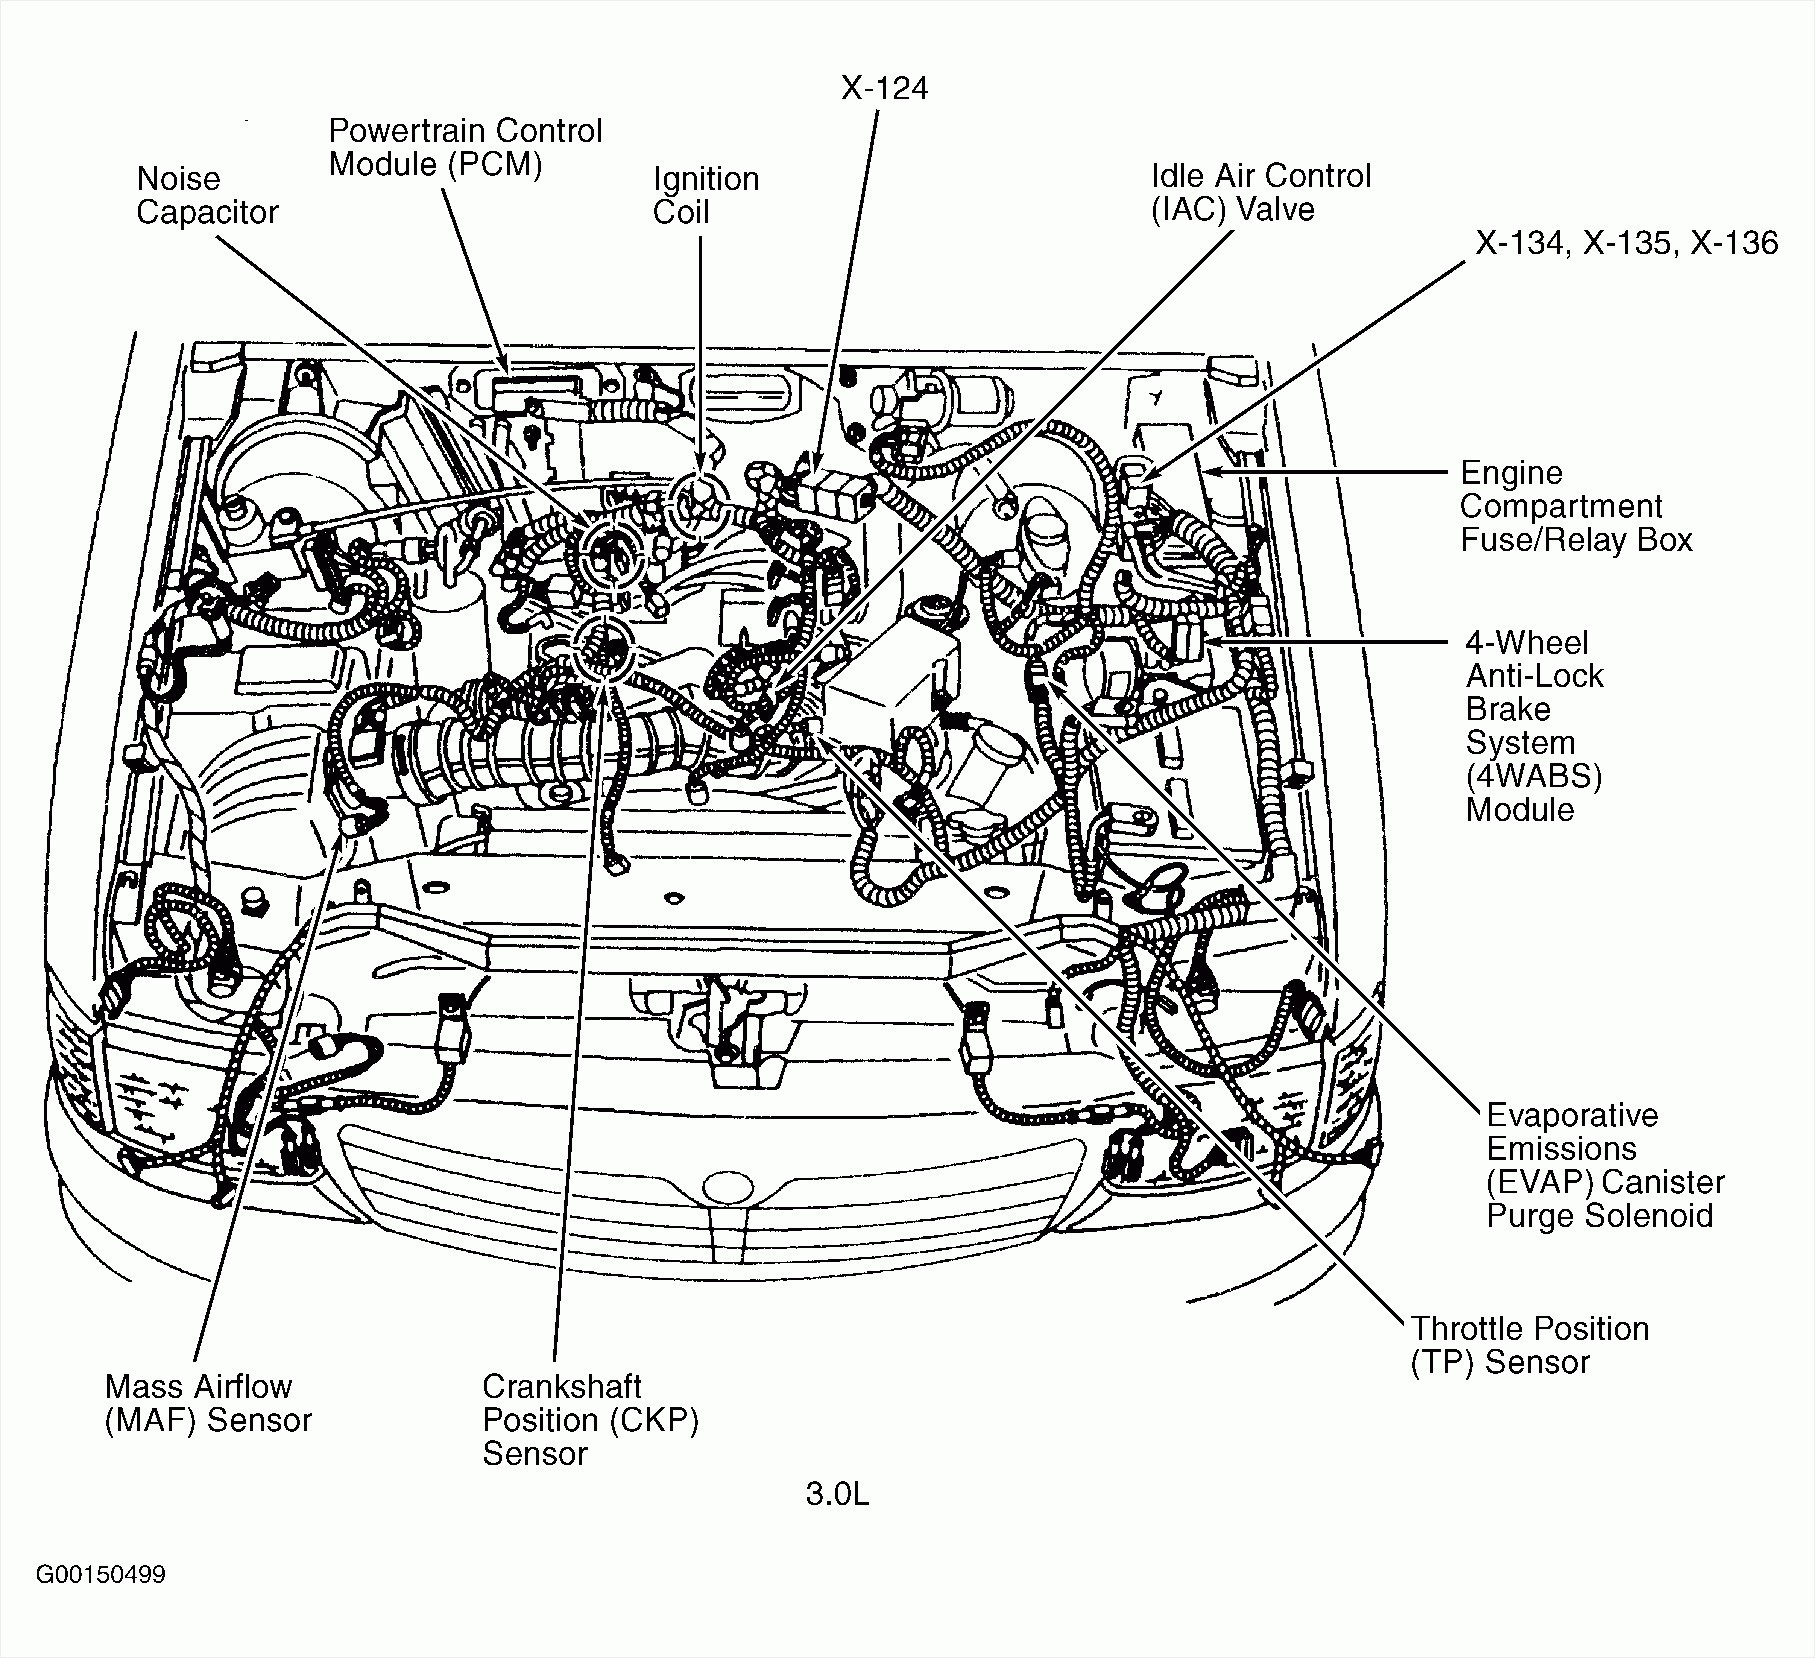 hight resolution of 2005 ford taurus exhaust system diagram wiring diagram post 2005 ford ranger engine diagram